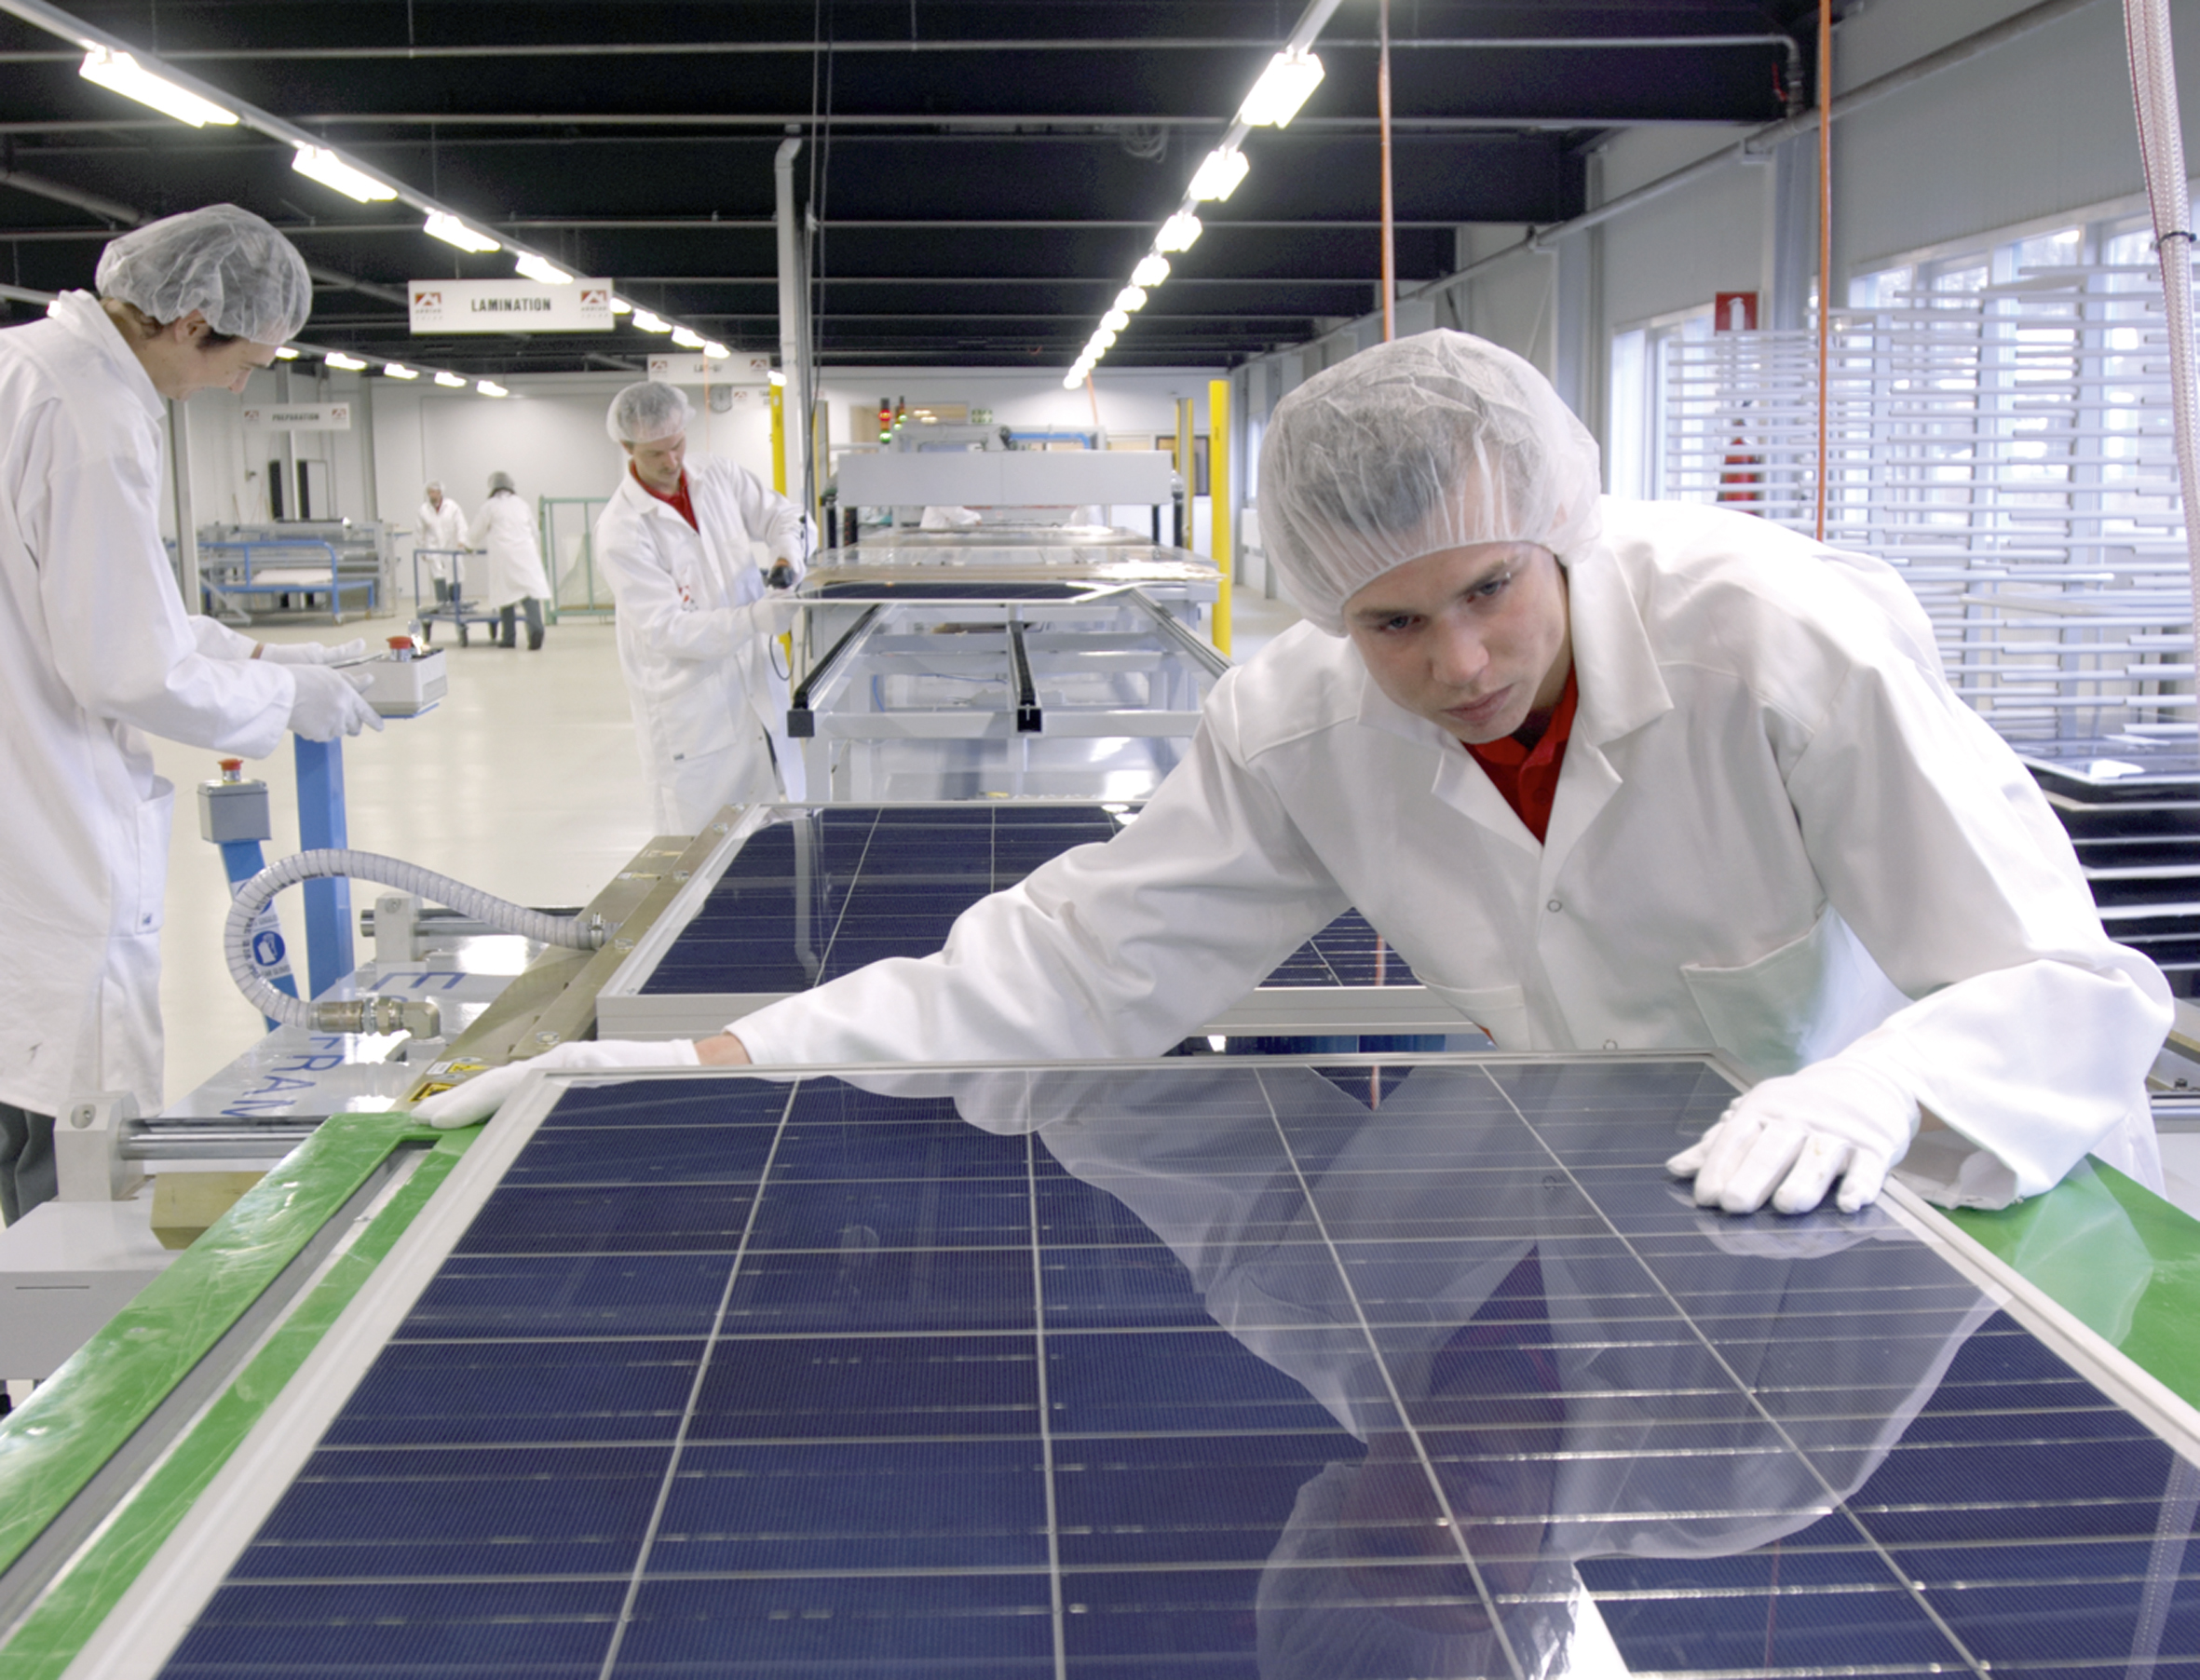 Dedicated module assembly capacity expansions announced in March reached over 4.38GW, up from 3.7GW in the previous month.